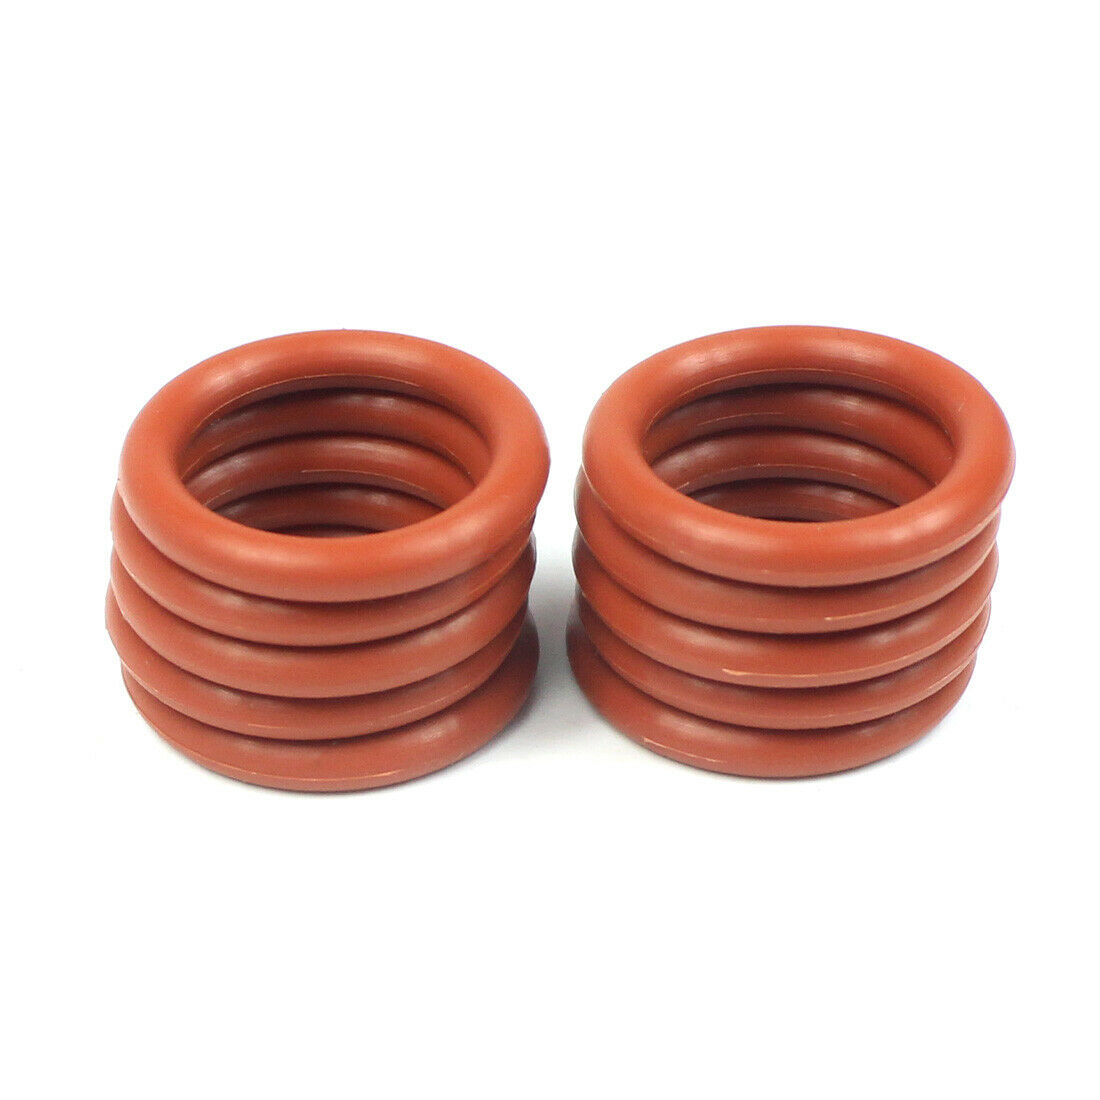 FEICHAO 10PCS O-type Rubber Ring Waterproof O-ring Adapter for Camera Ball Head